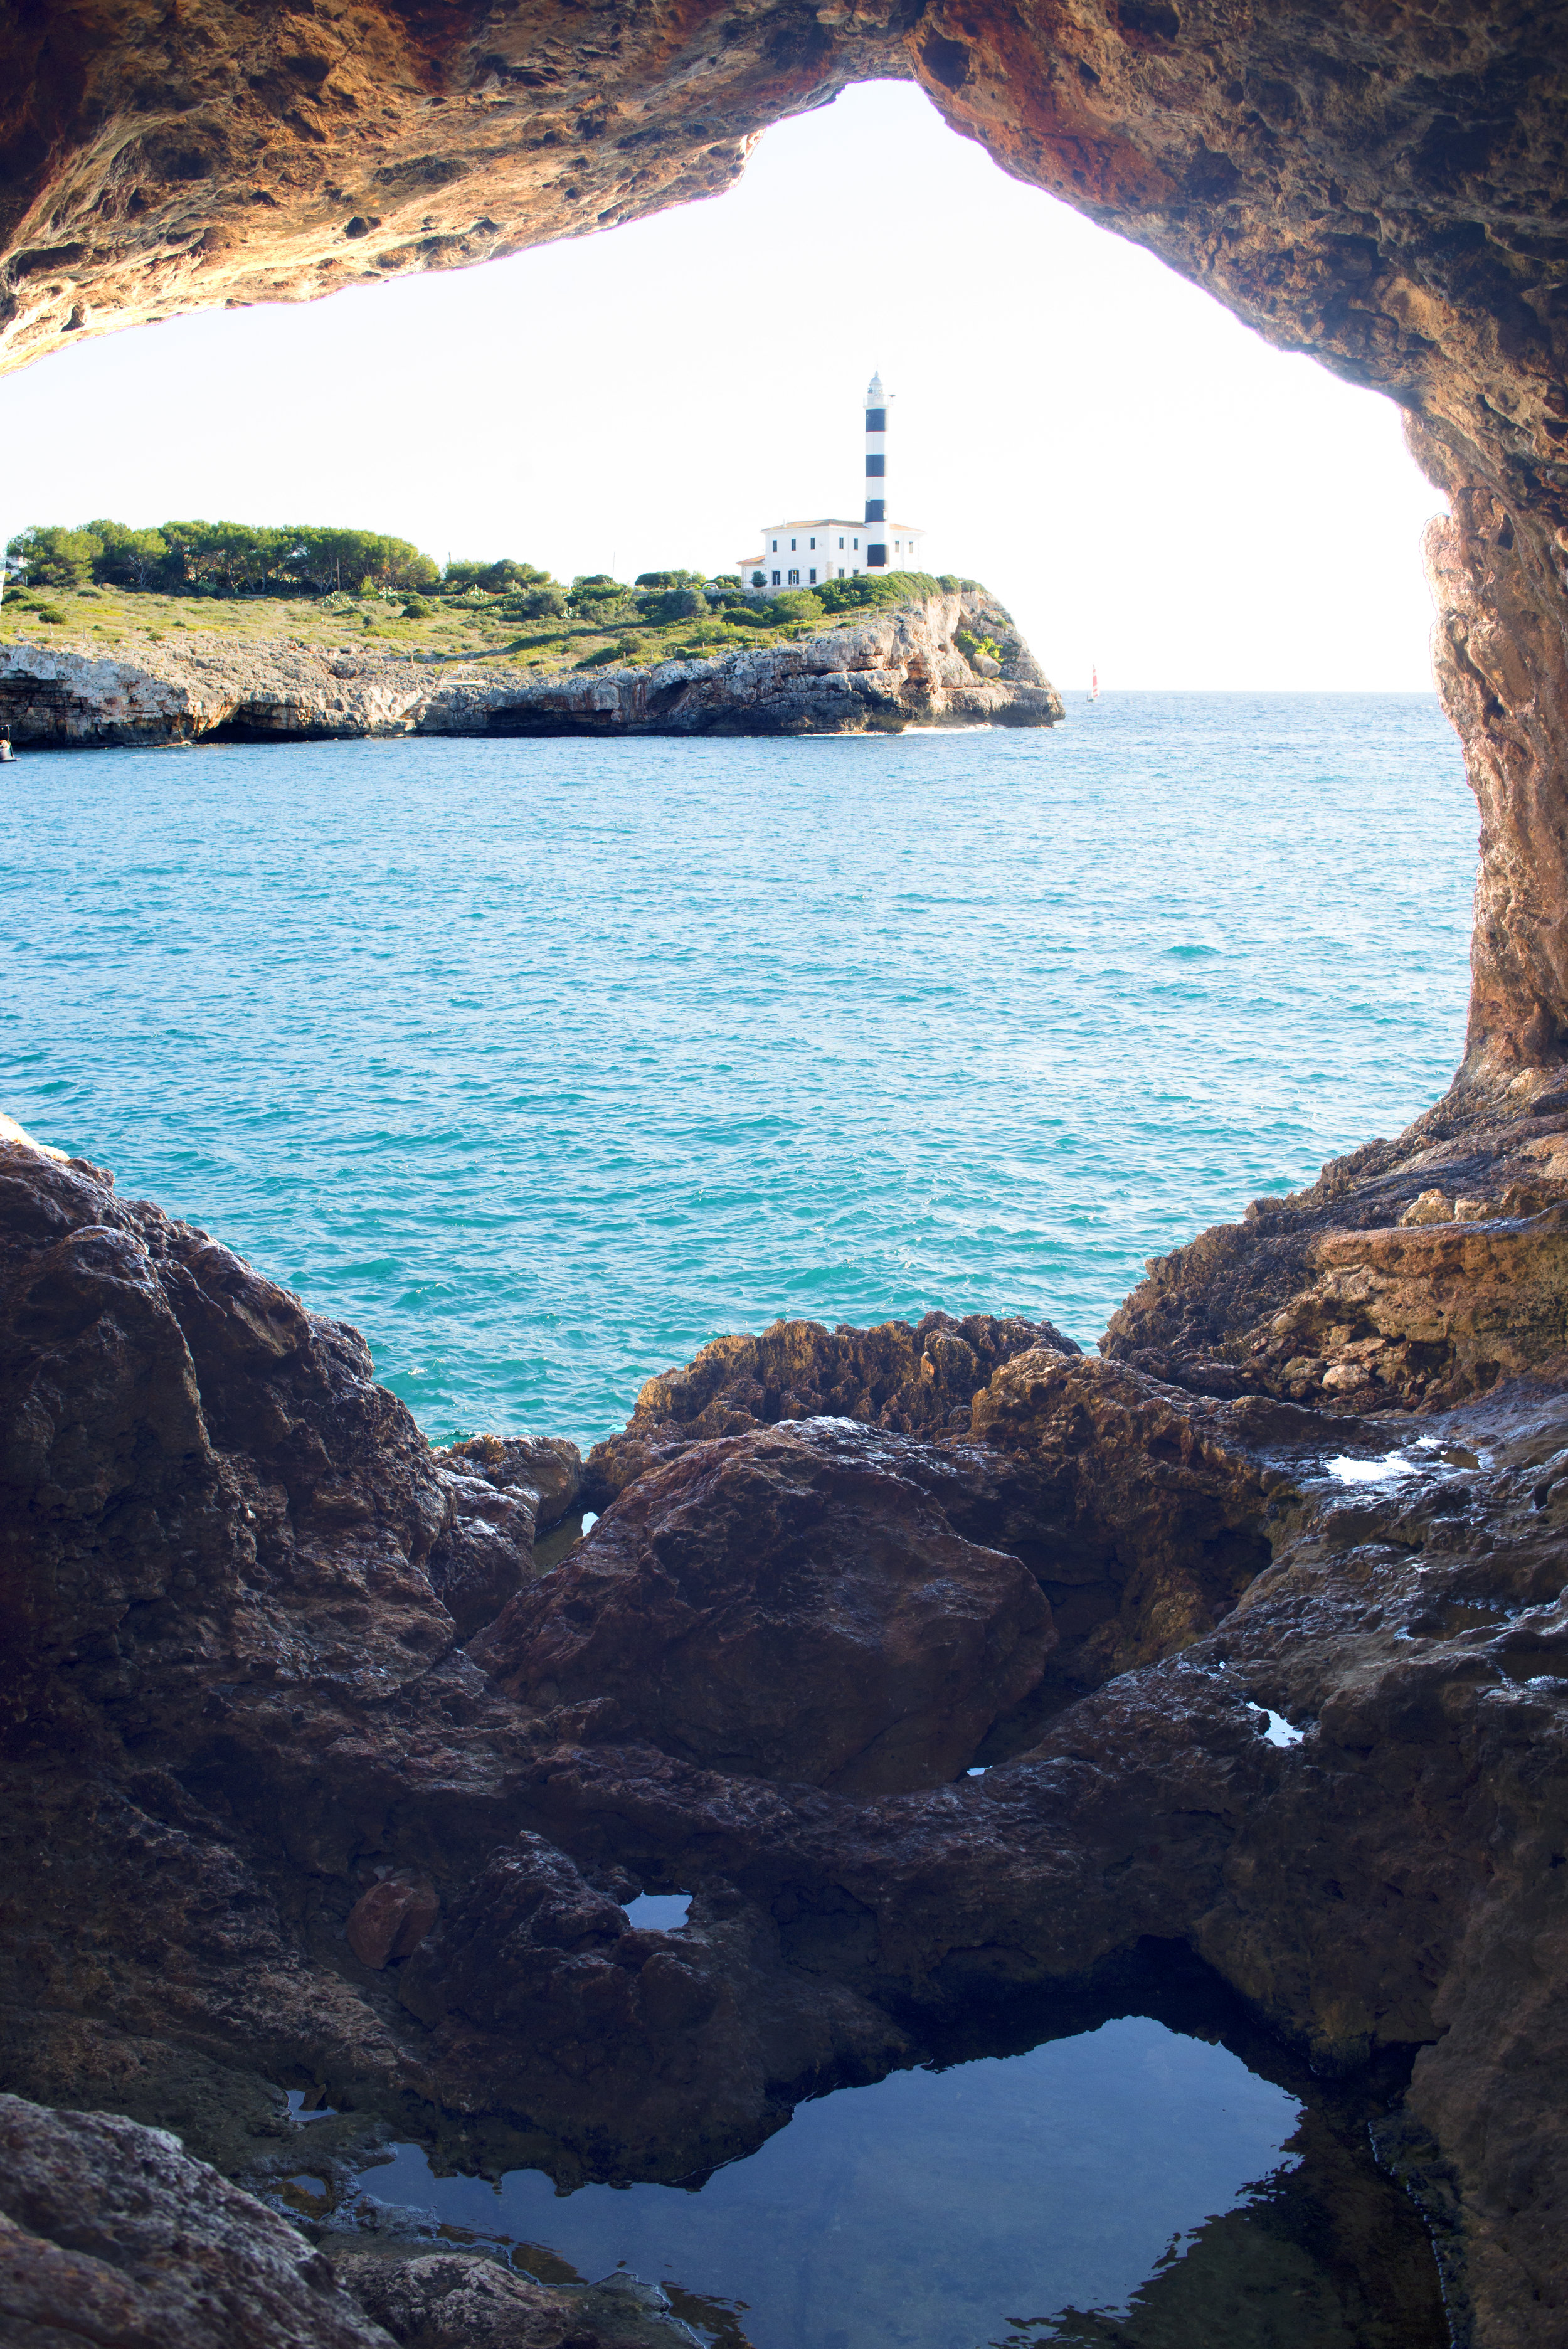 Lighthouse at Ponta de Ses Crest. Photographed from Natural Arch at Portocolom.